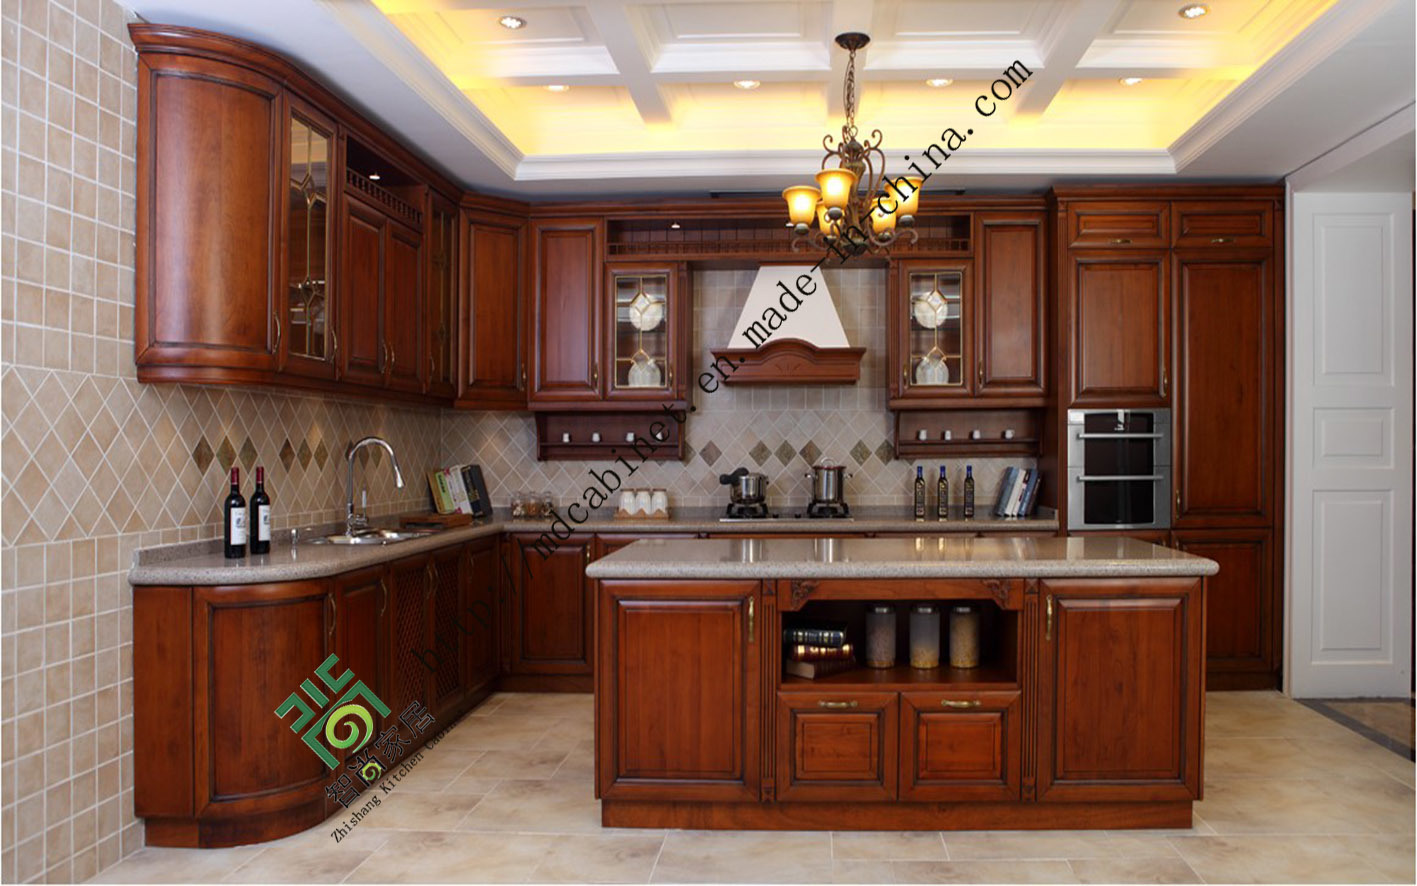 Kitchen Cabinets Second Hand Image 2 China Hot Sale Solid Wood Kitchen Cabinets Photos